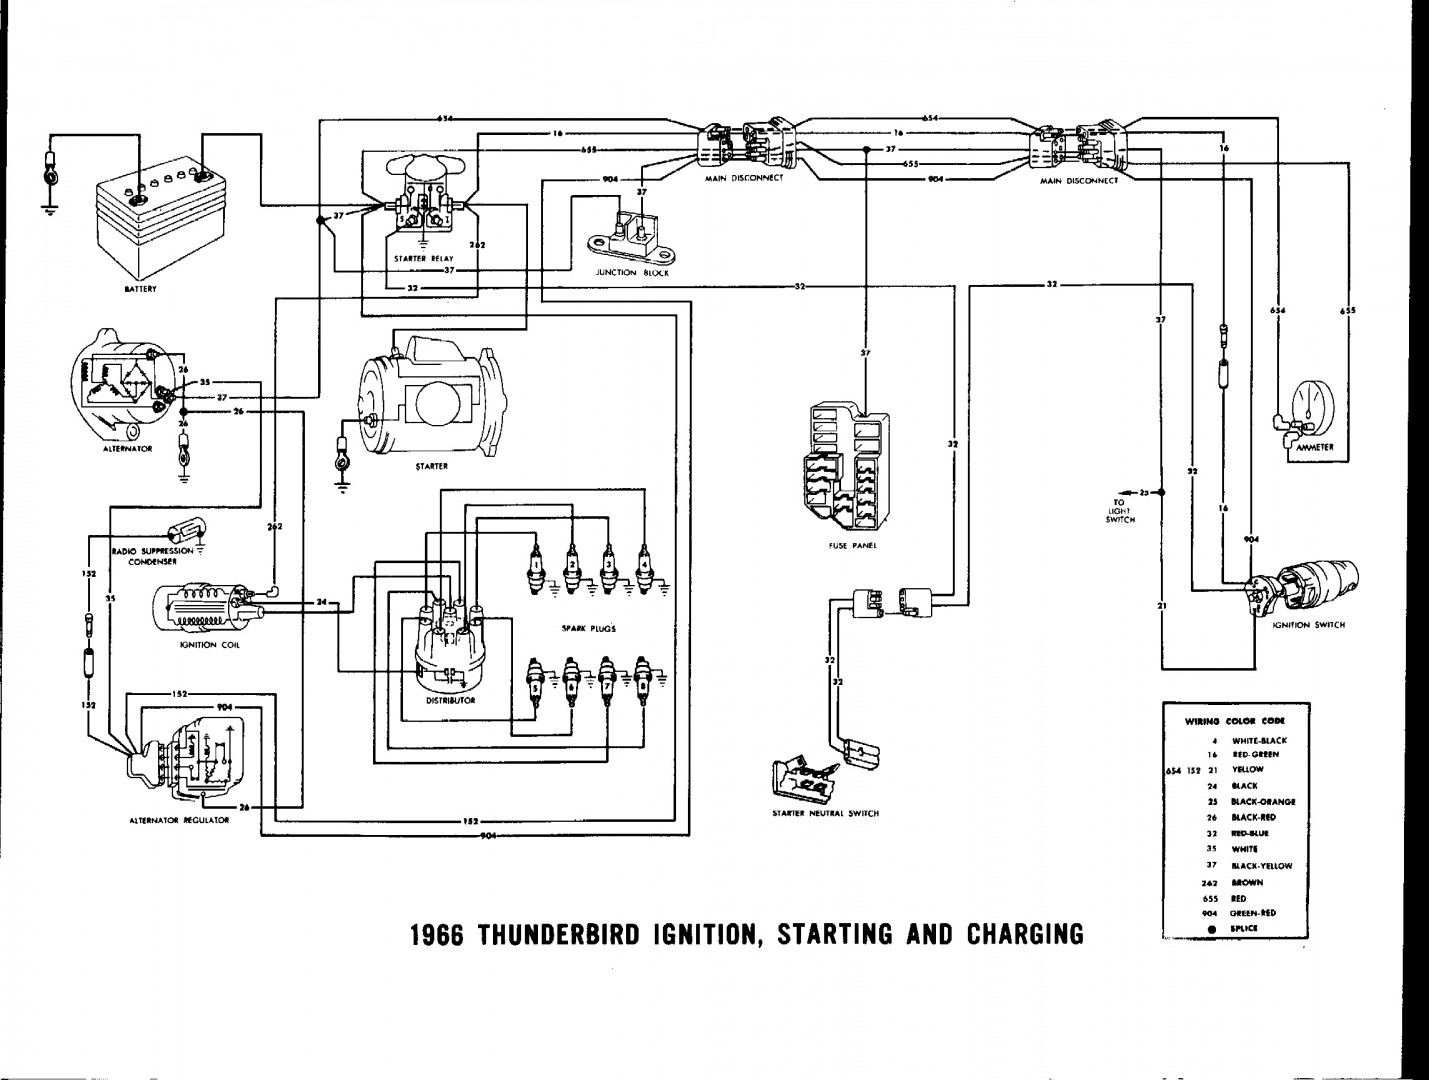 wiring diagram for 1985 fleetwood southwind fleetwood southwind -  designonline.doctree.in  doctree